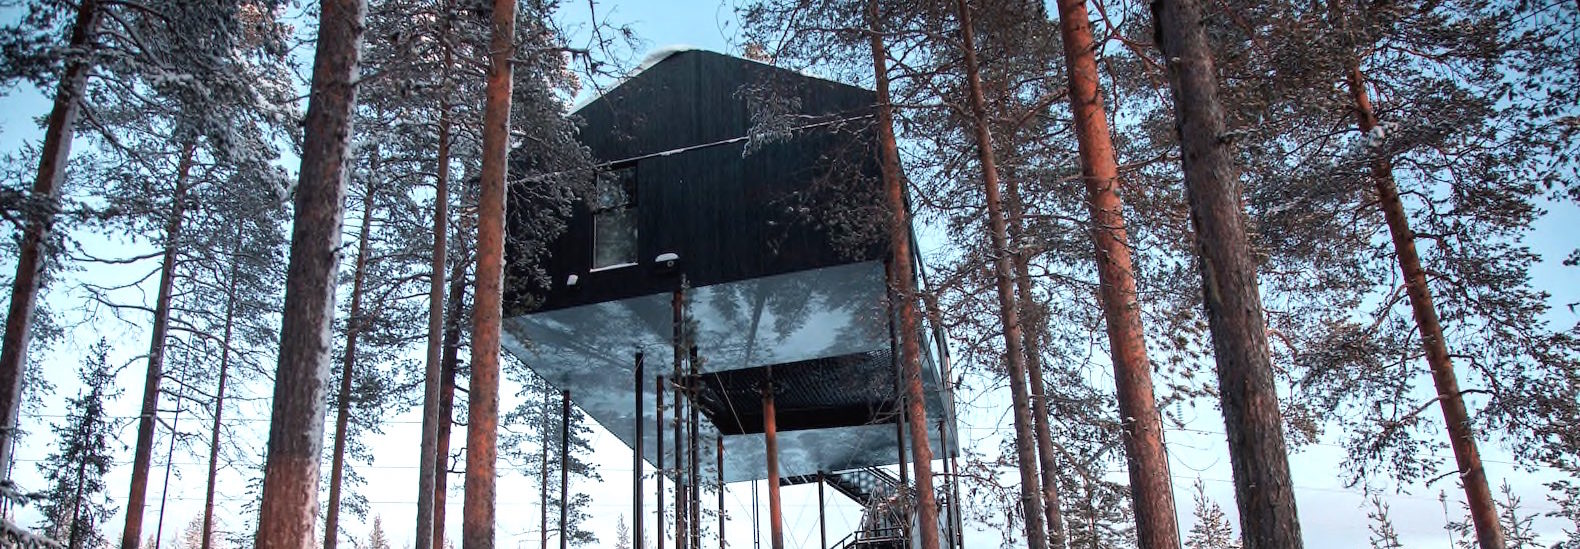 Sn hetta s luxury cabin with aurora borealis views opens for Treehouse cabins aurora ny